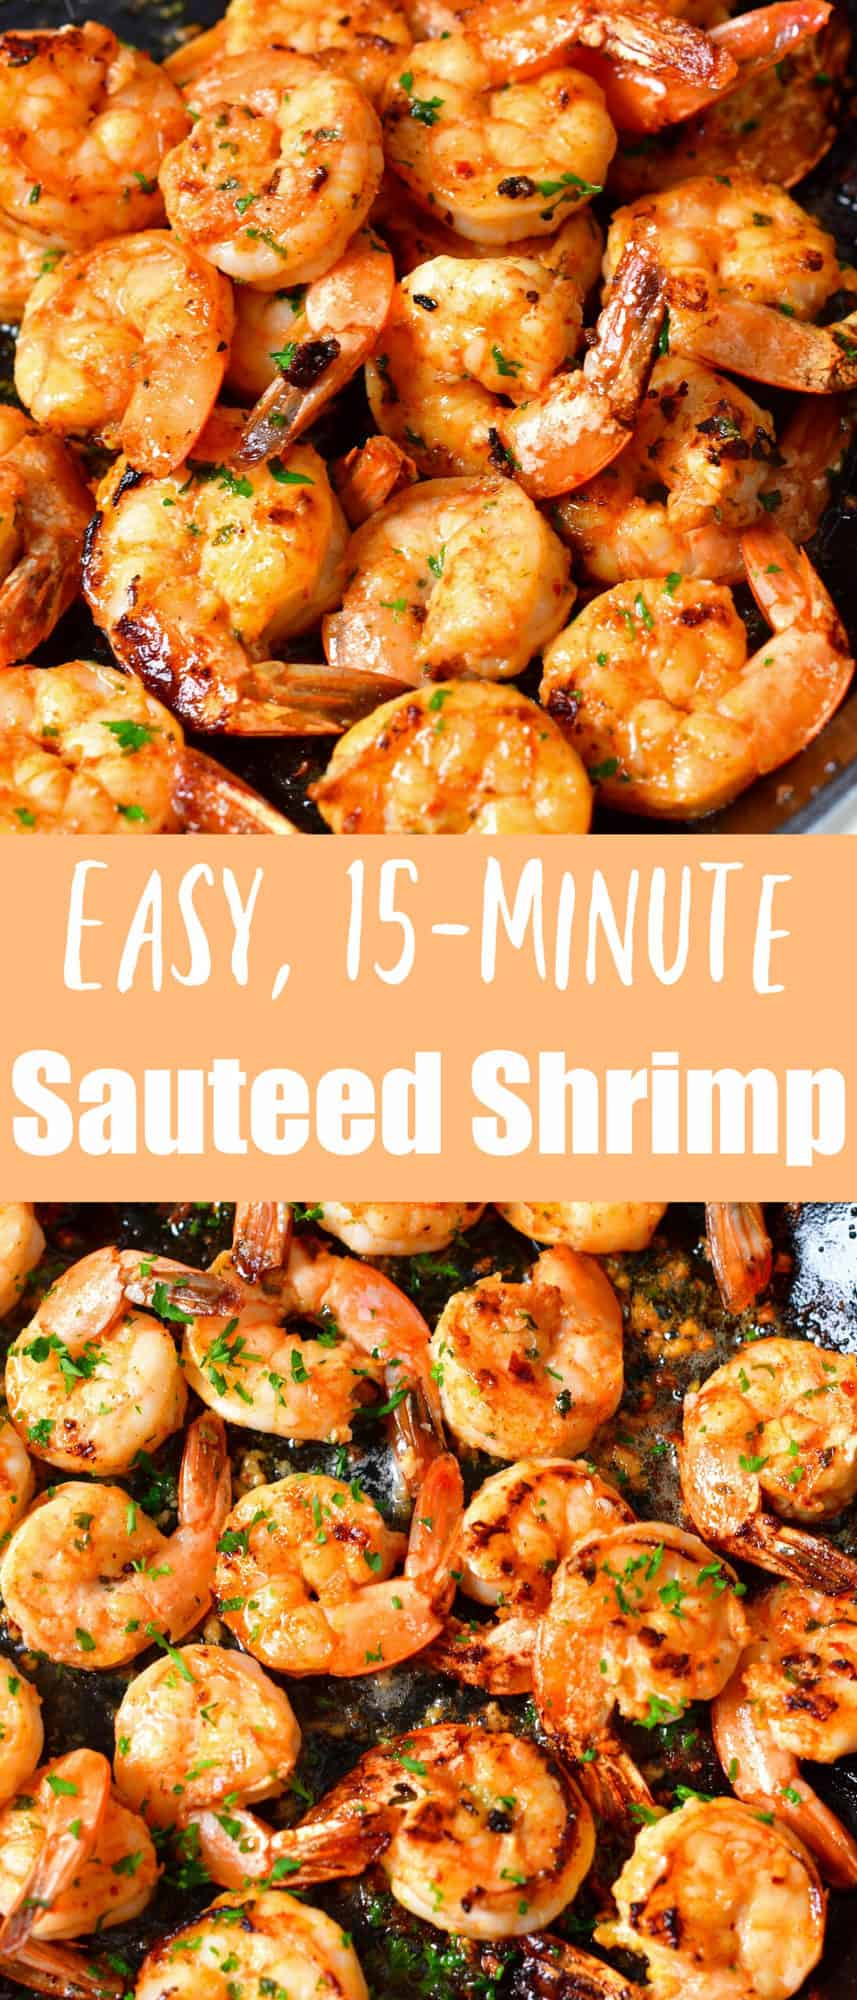 title collage of sautéed shrimp in the pan on top and bottom